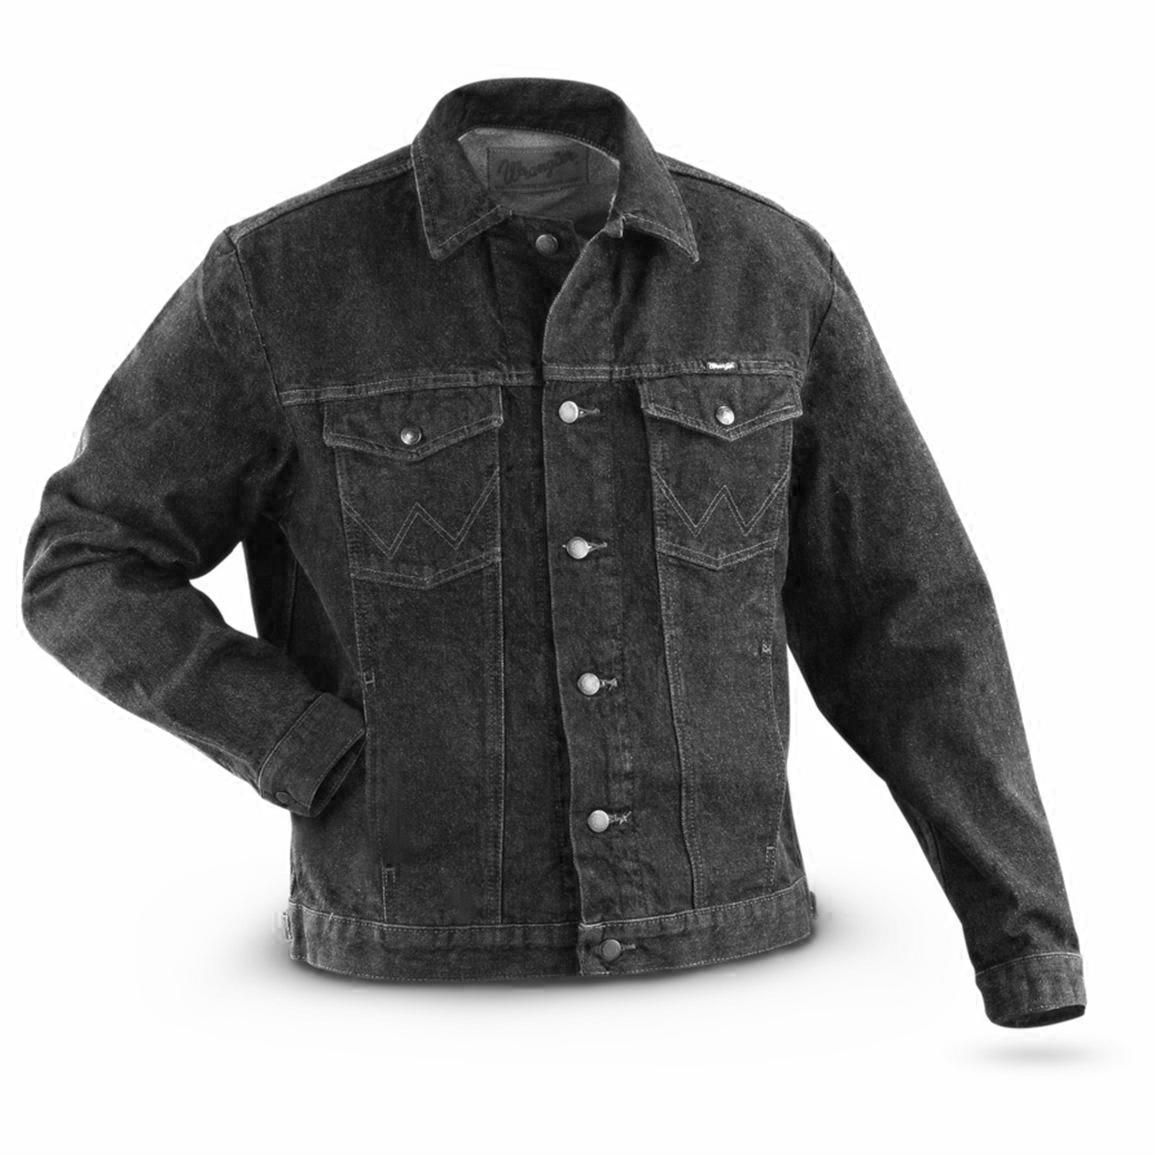 BulletBlocker NIJ IIIA Bulletproof Denim Jacket2